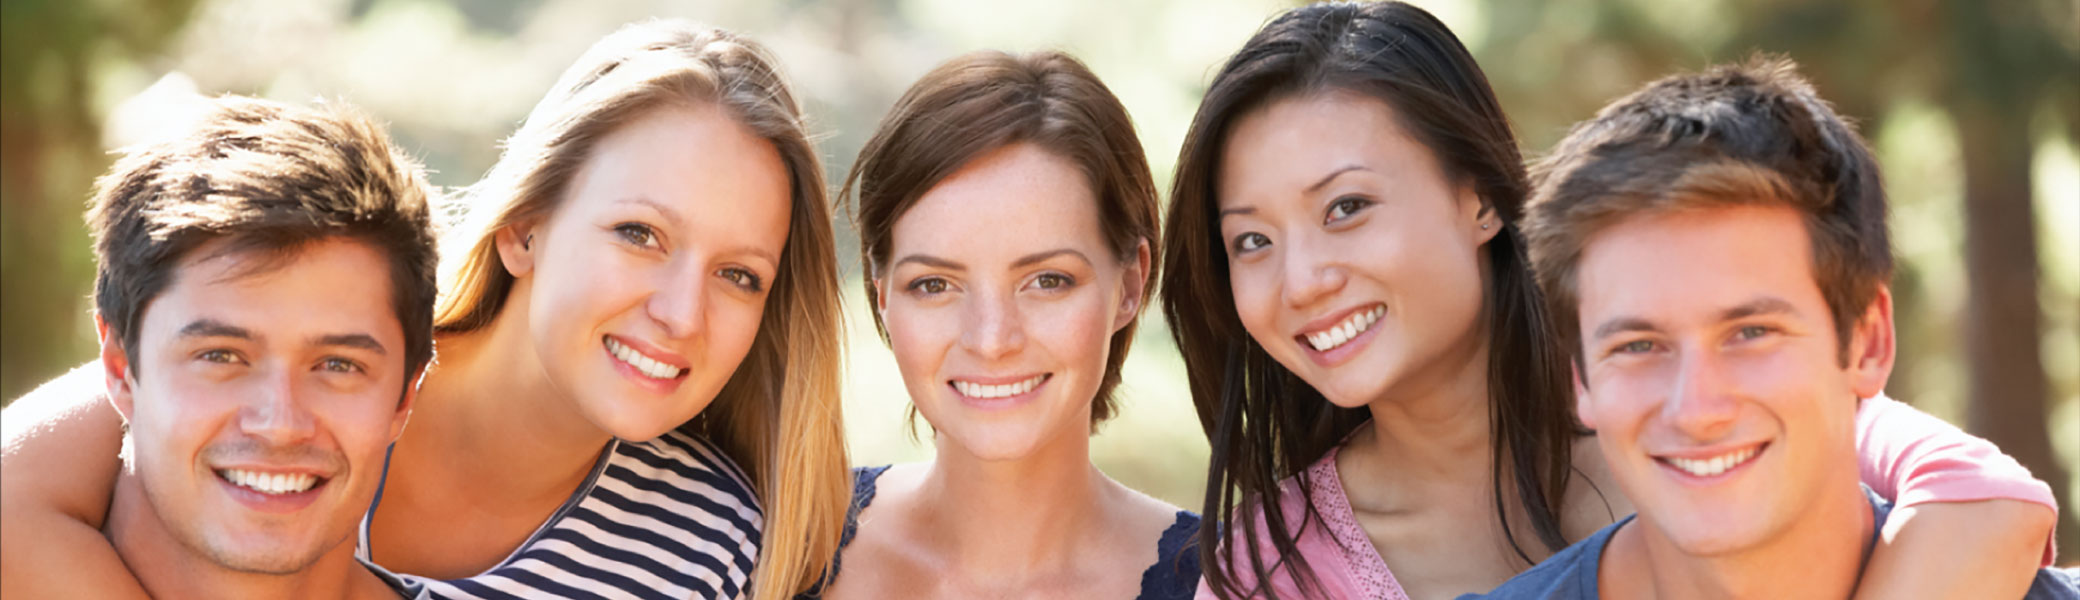 Complete Cosmetic Dentistry